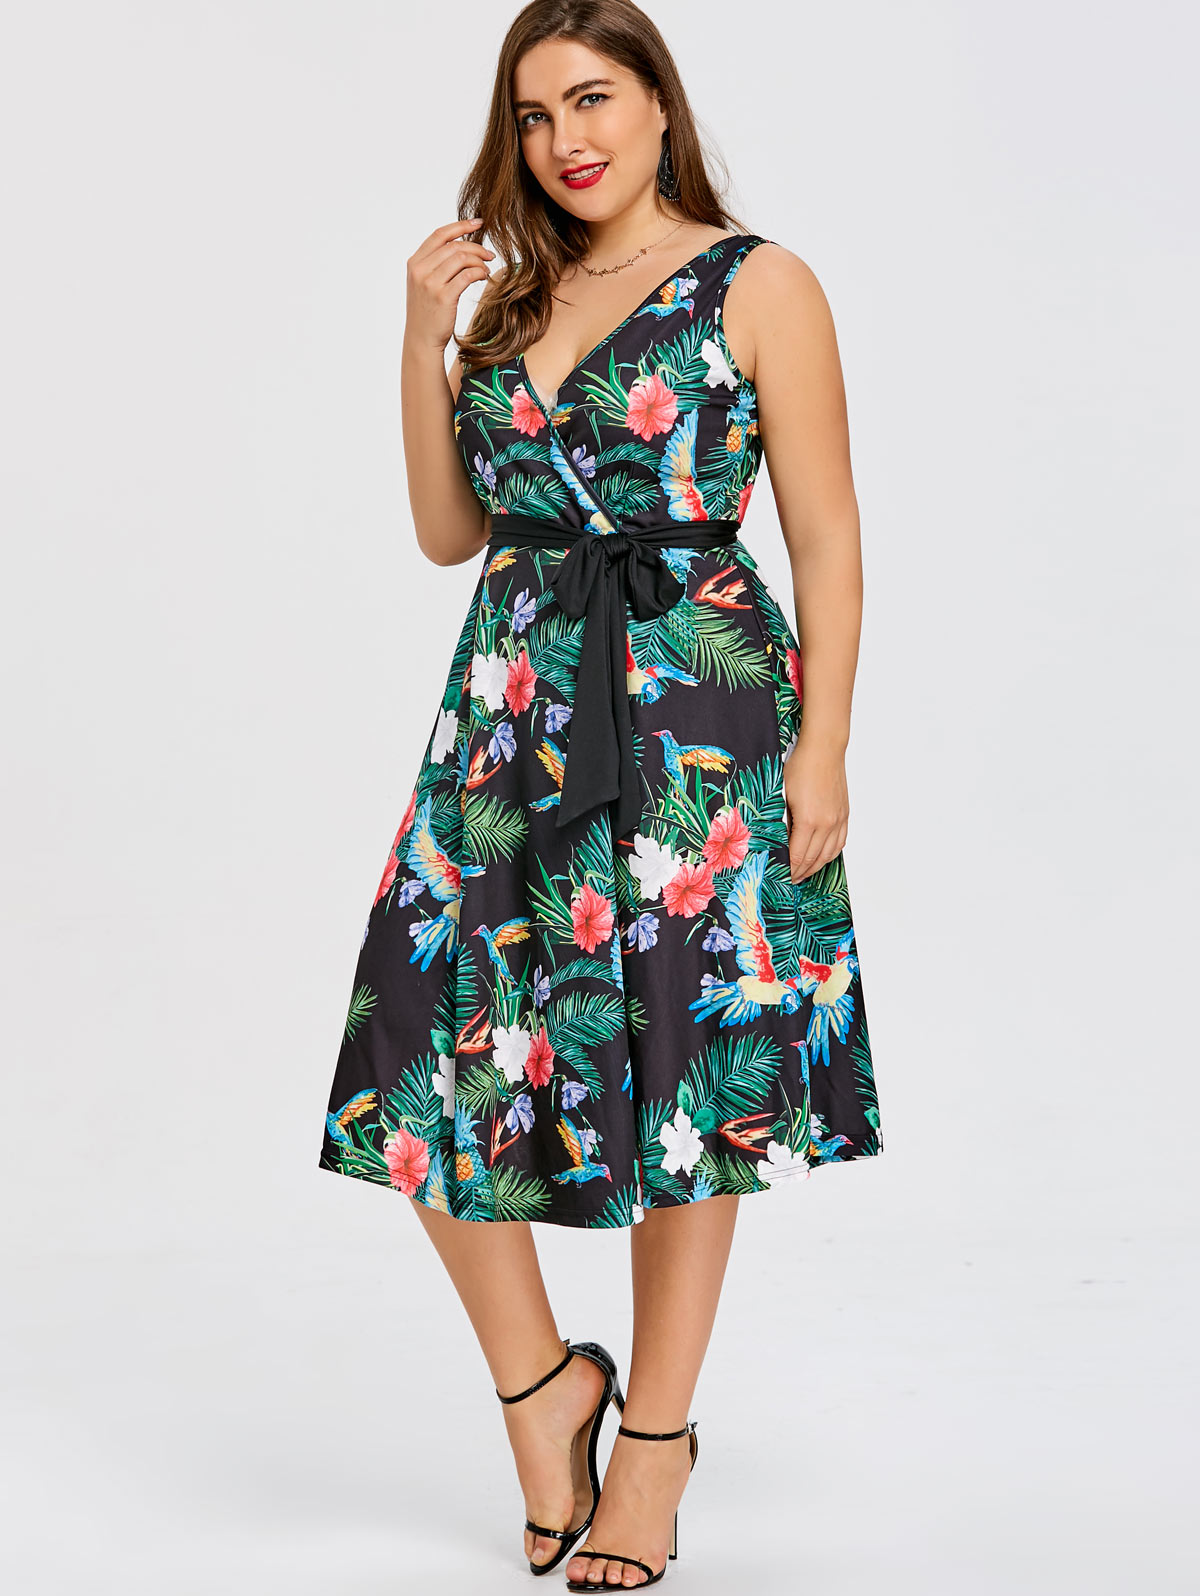 US $14.68 55% OFF|Wipalo Plus Size Hawaiian Leaf Midi Boho Dress Women  Sleeveless V Neck Belted Elegant Party Vintage Dresses Robe Vestido 5XL-in  ...